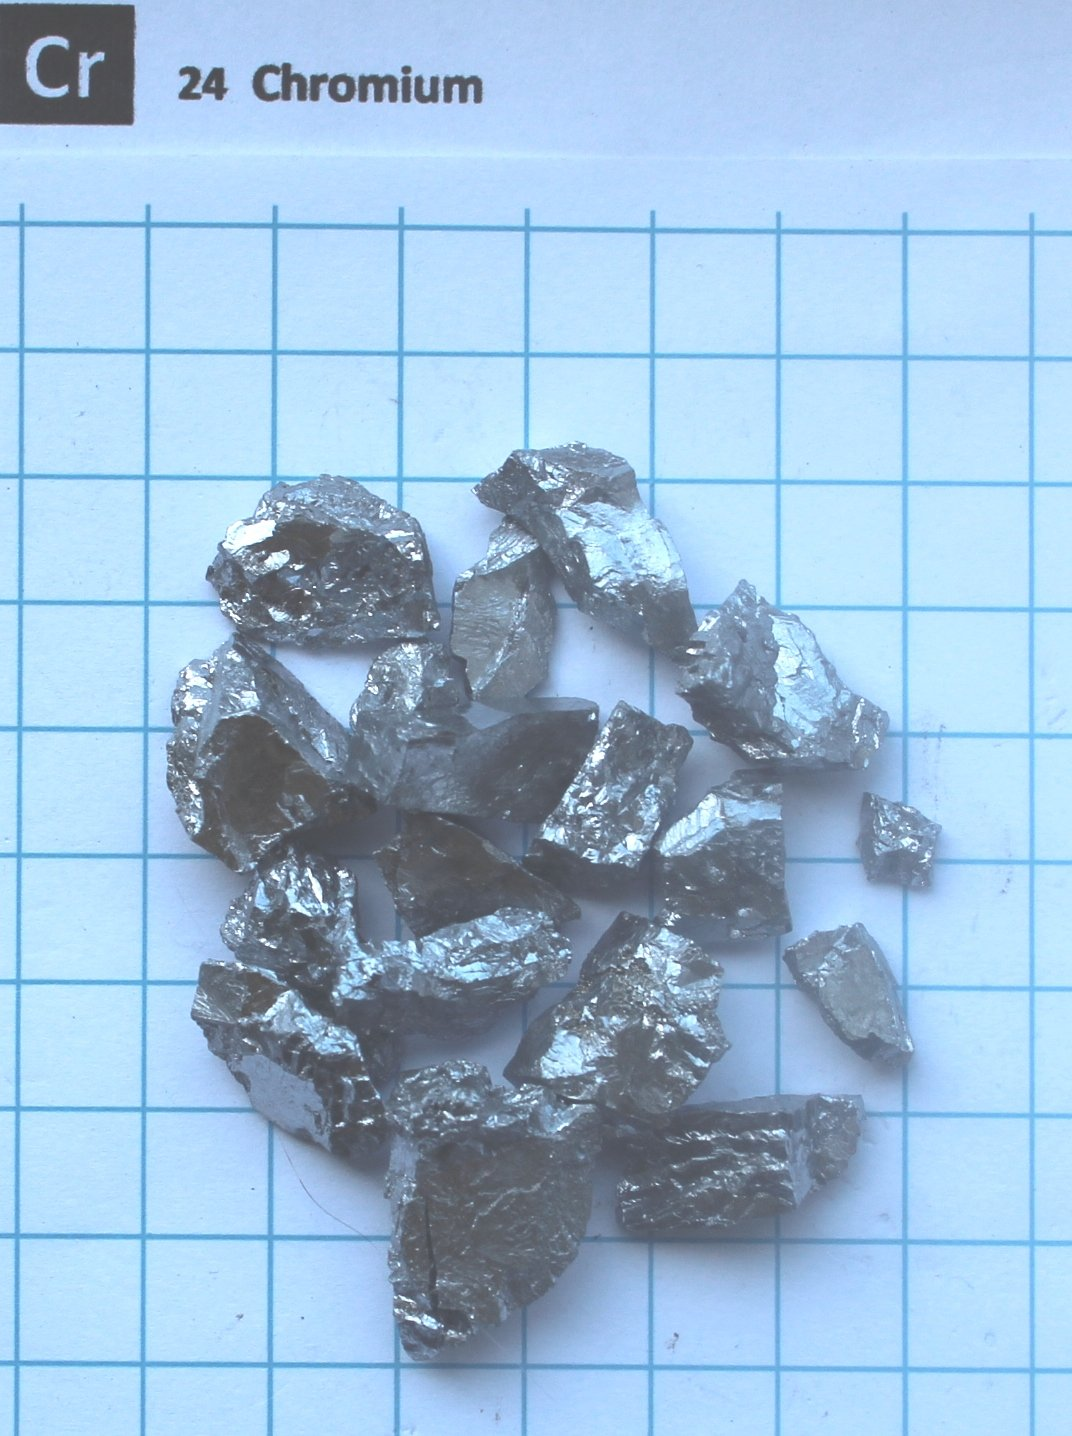 80 gram 99.9% Chrome Chromium Metal Pieces - Pure Element 24 Sample - Free Shipping Snaucke Elements